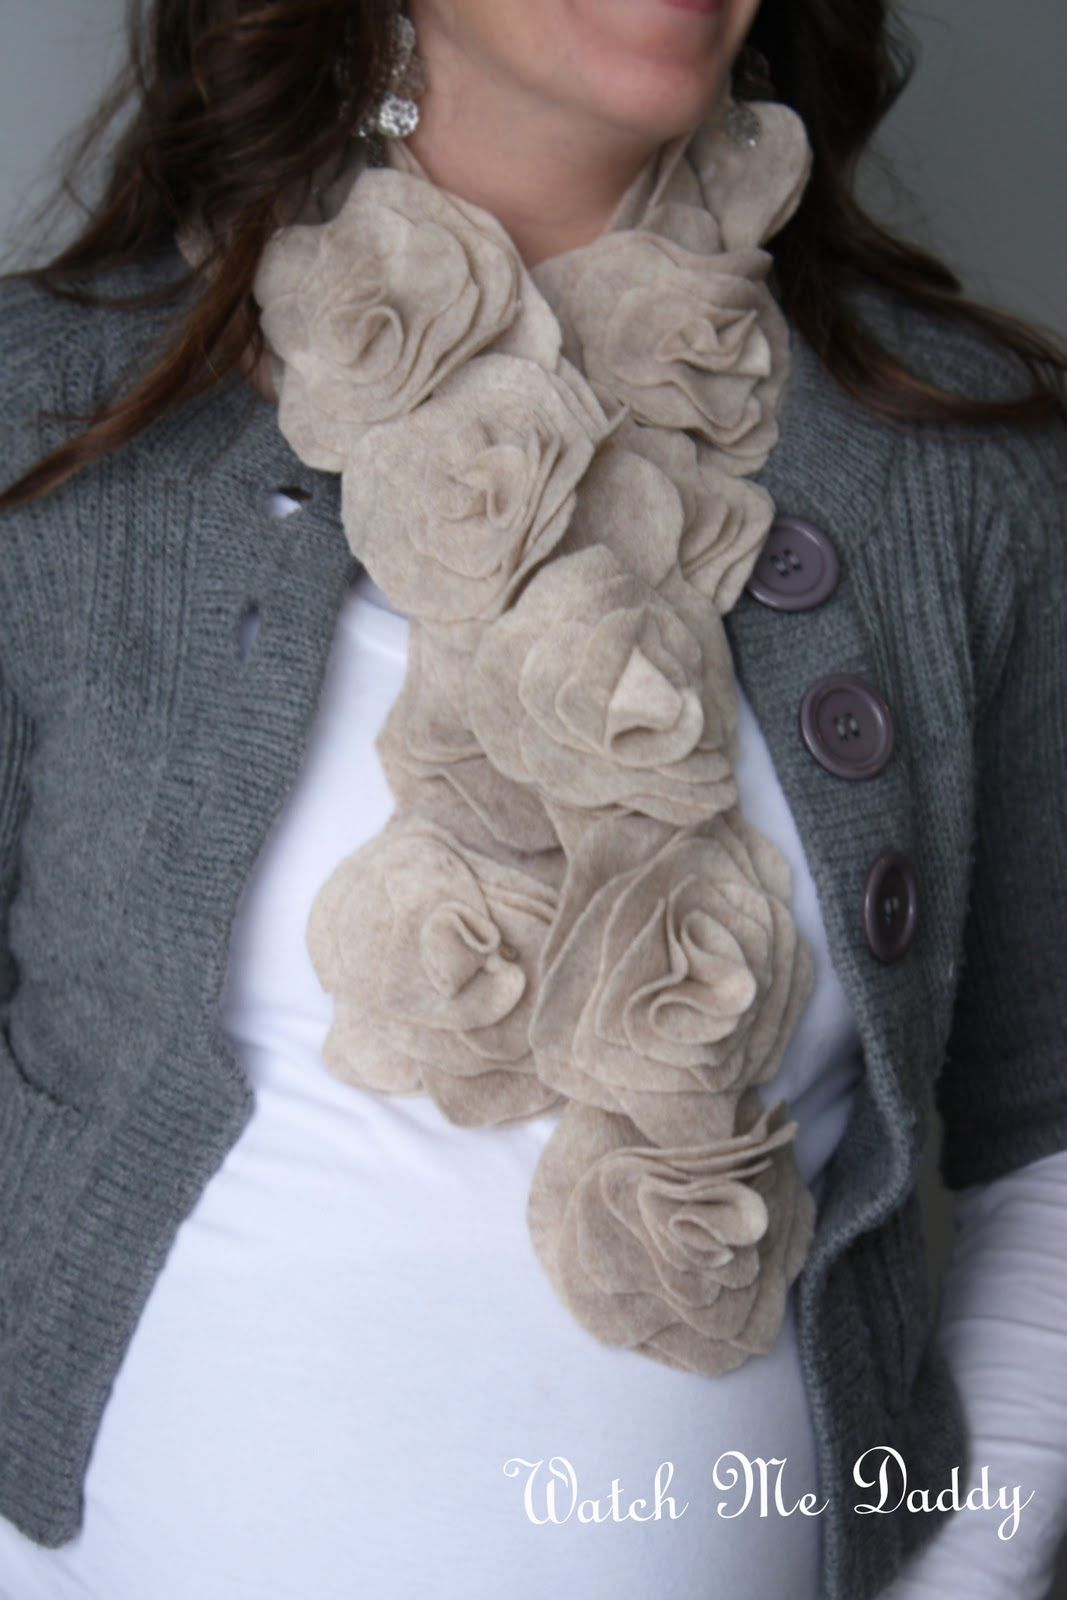 Felt flower scarf. I would like to make this for my mom.